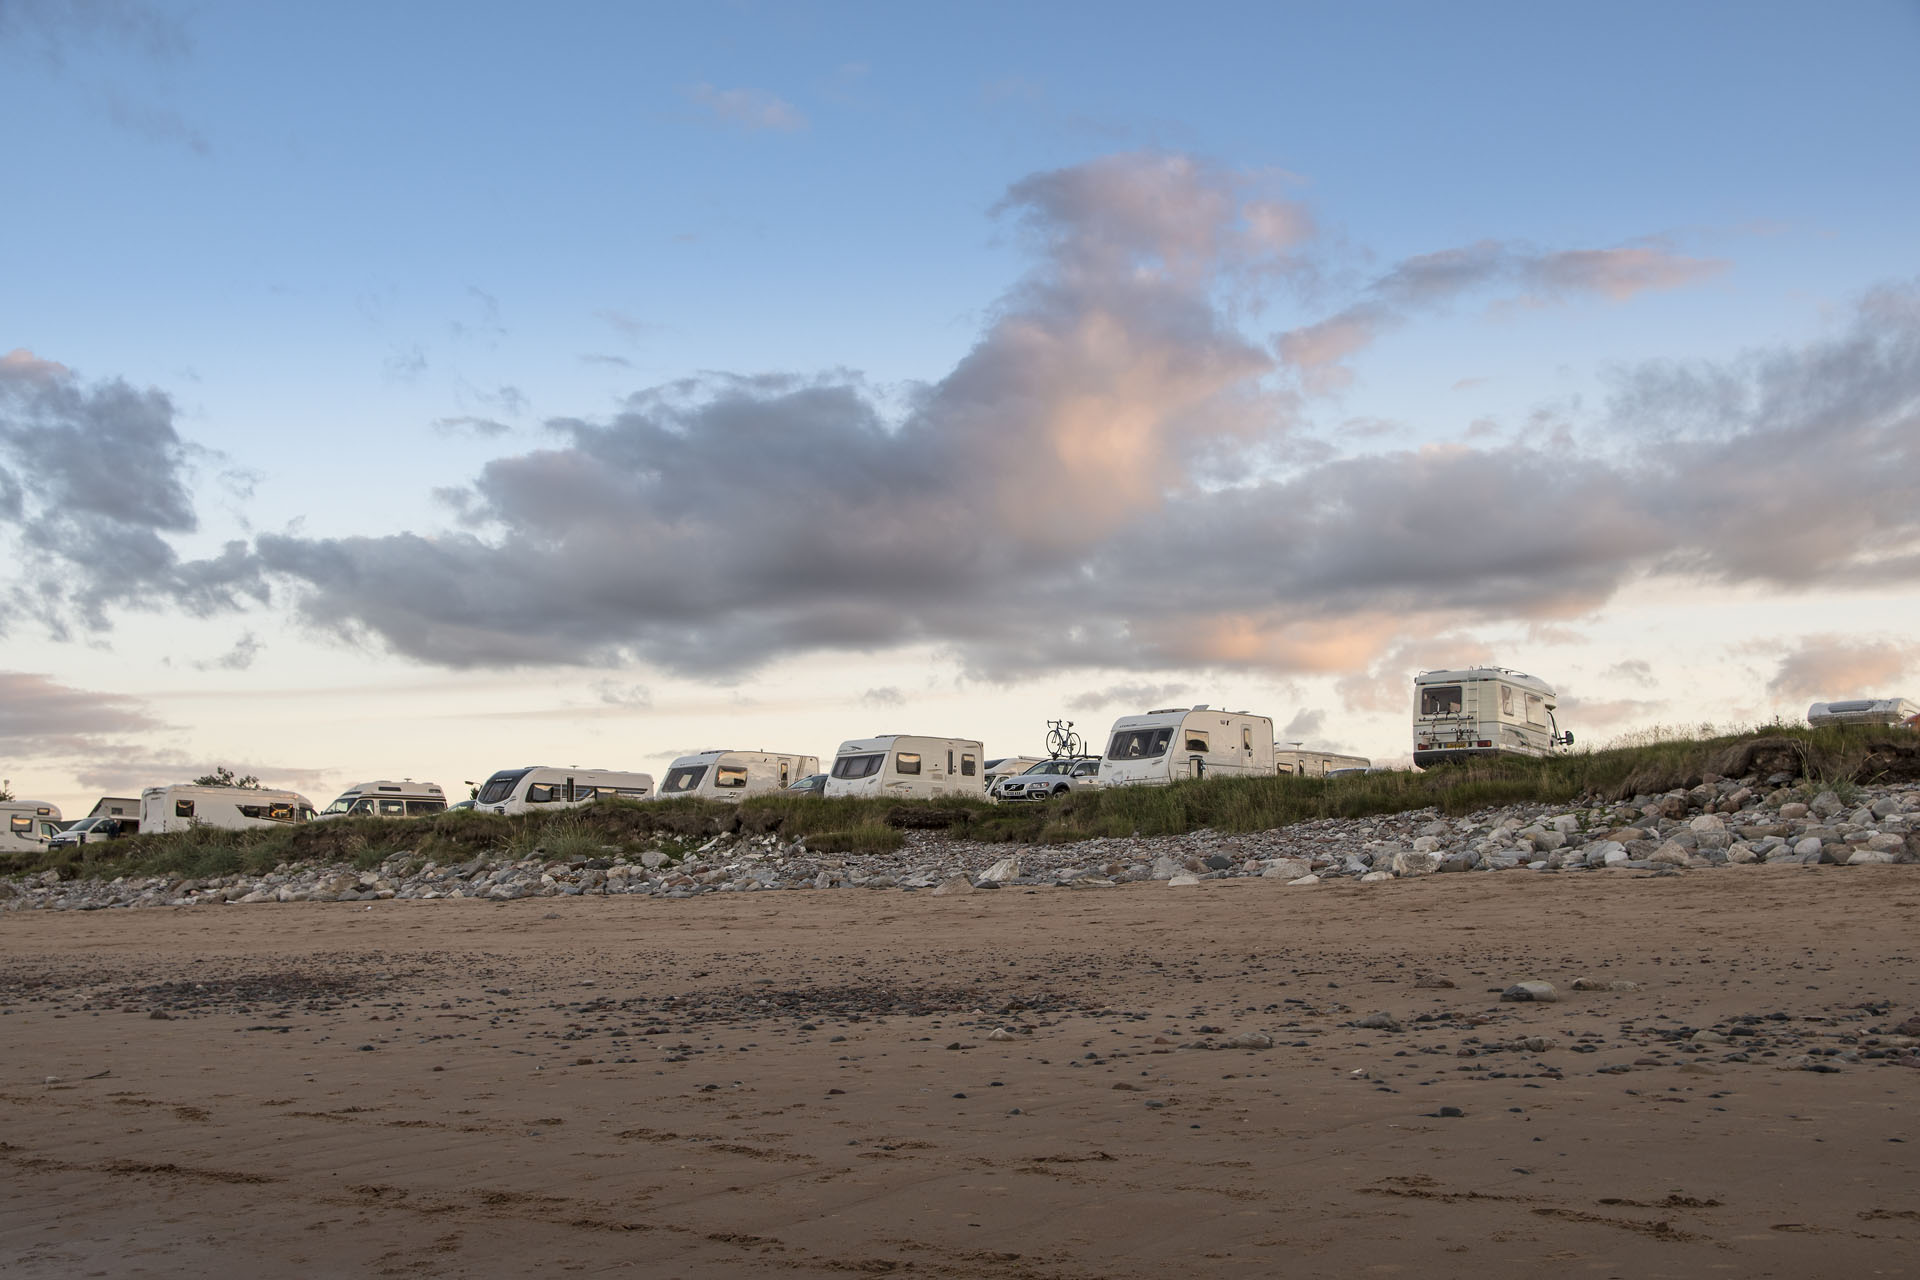 Rosemarkie Camping And Caravanning Club Site The